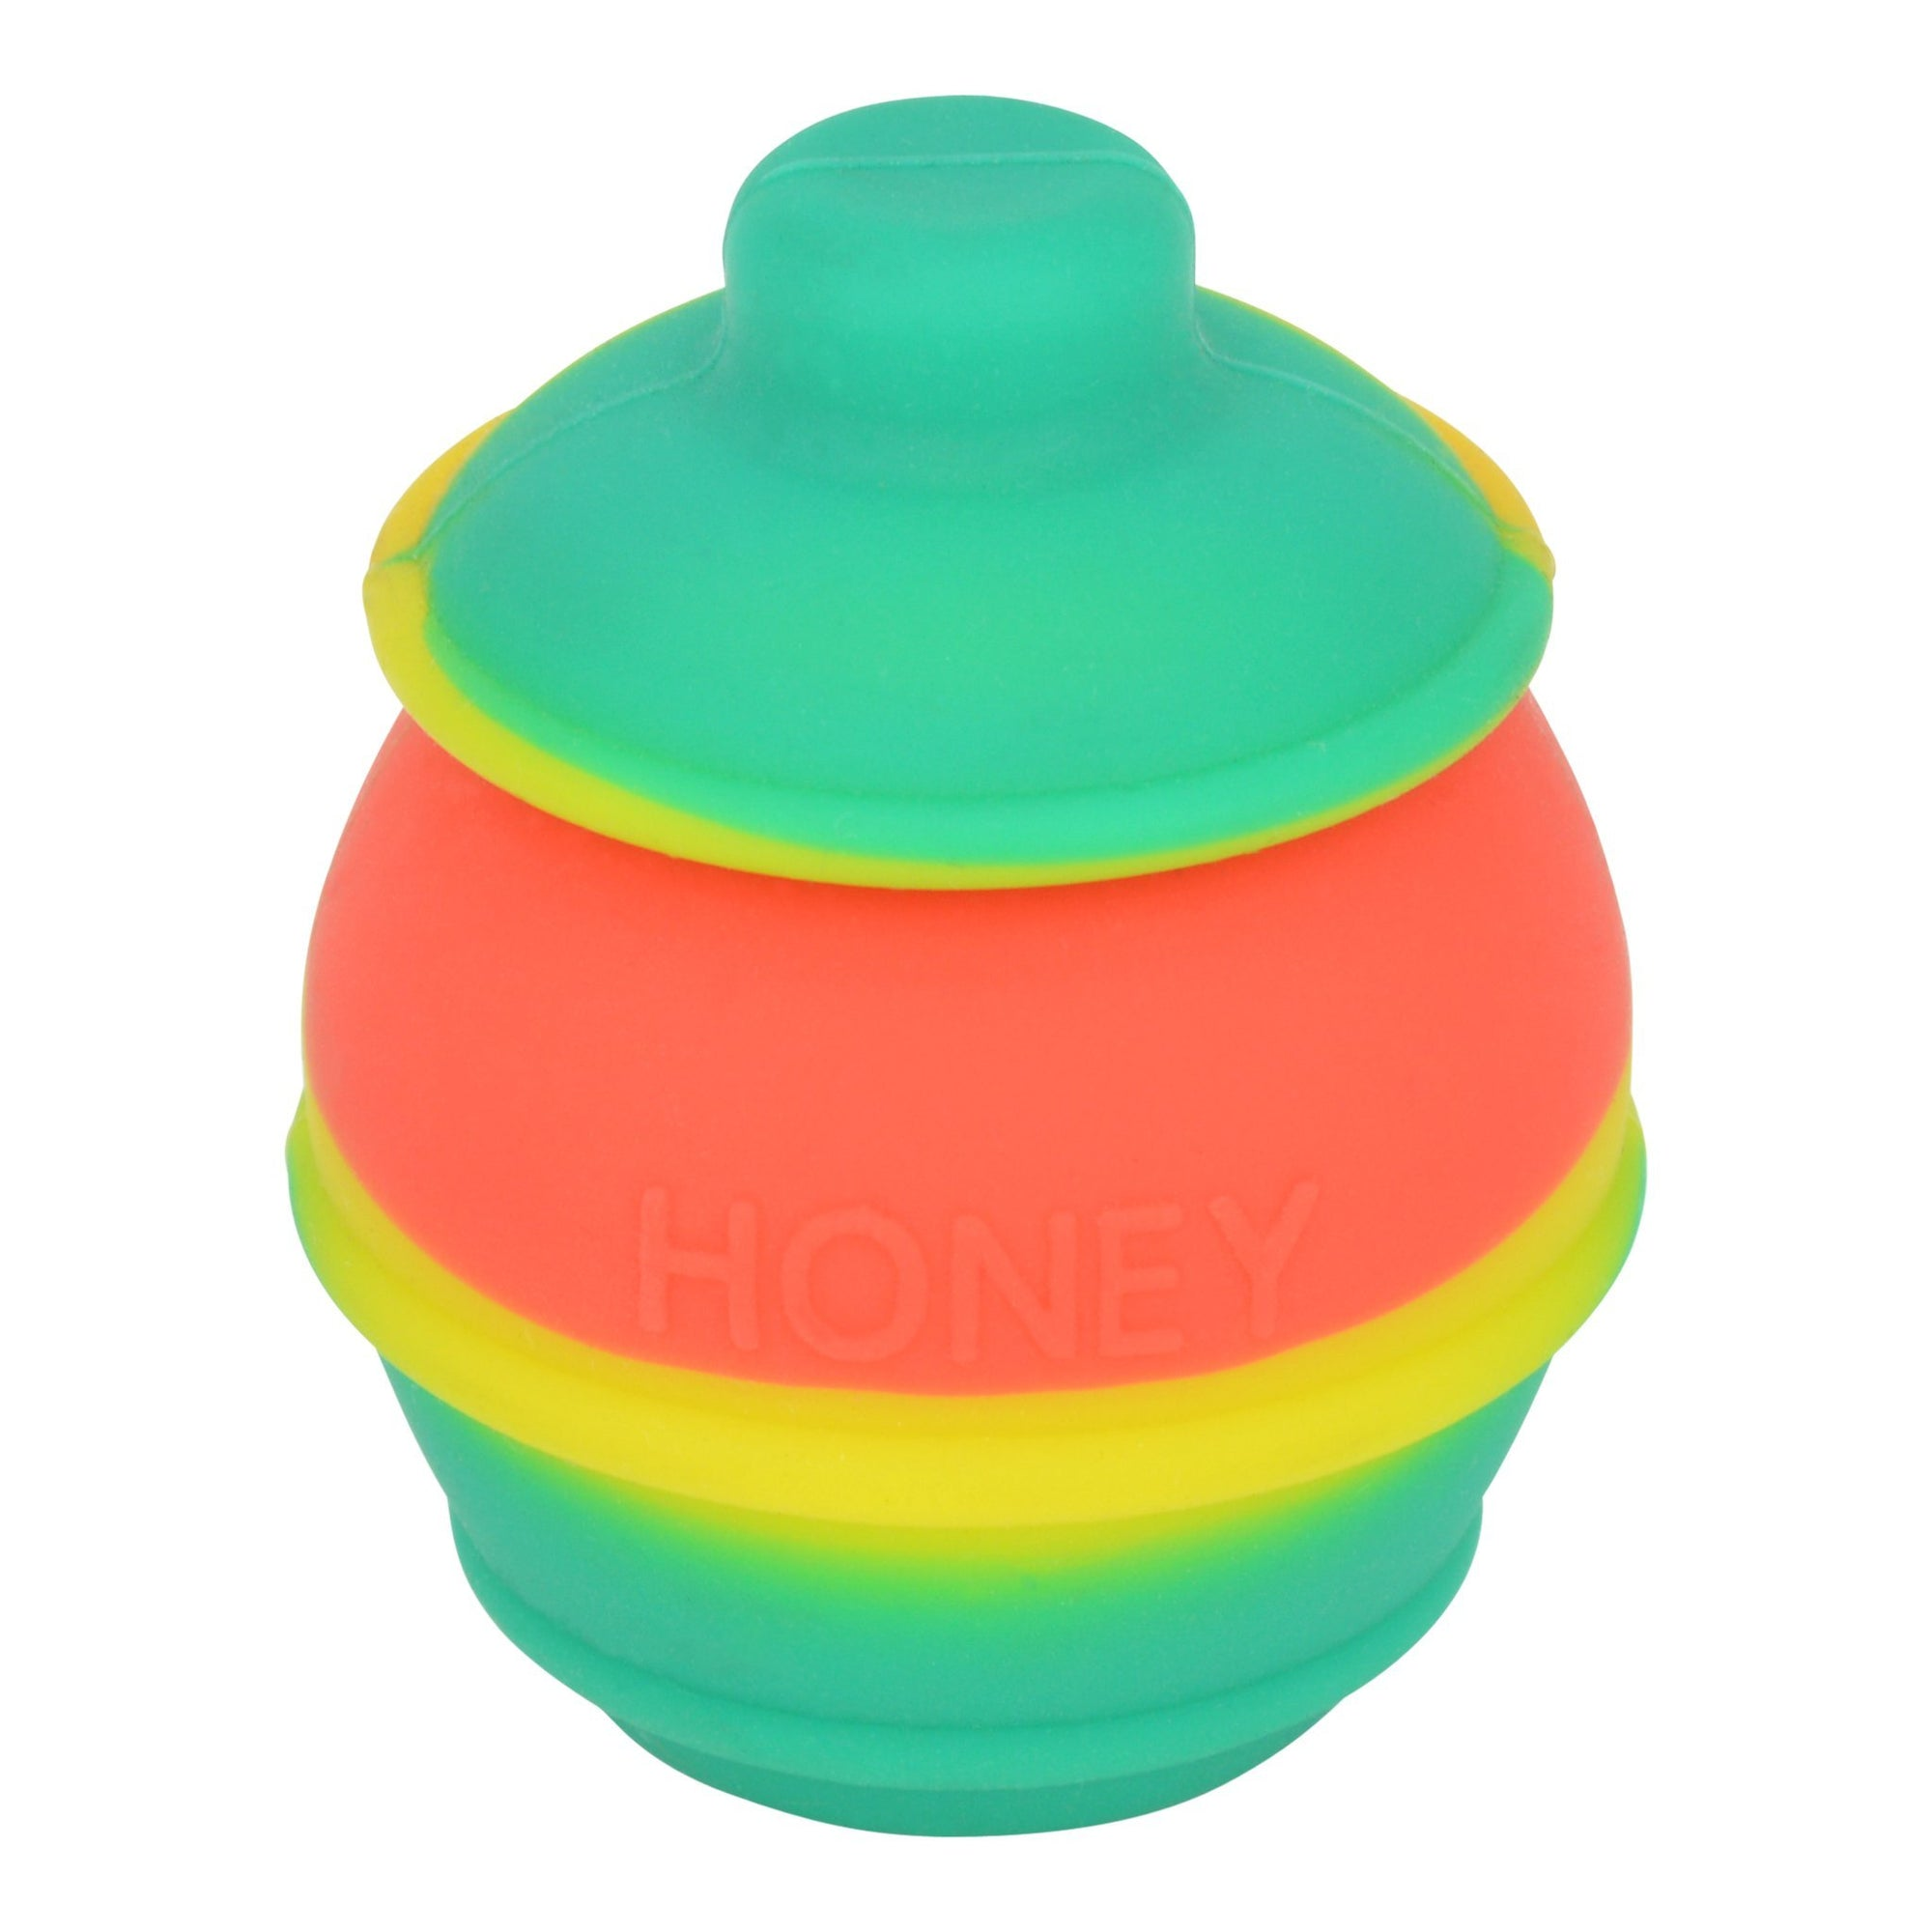 High angle front shot of rasta honey pot silicone wax container green, yellow, orange colors honey word in front